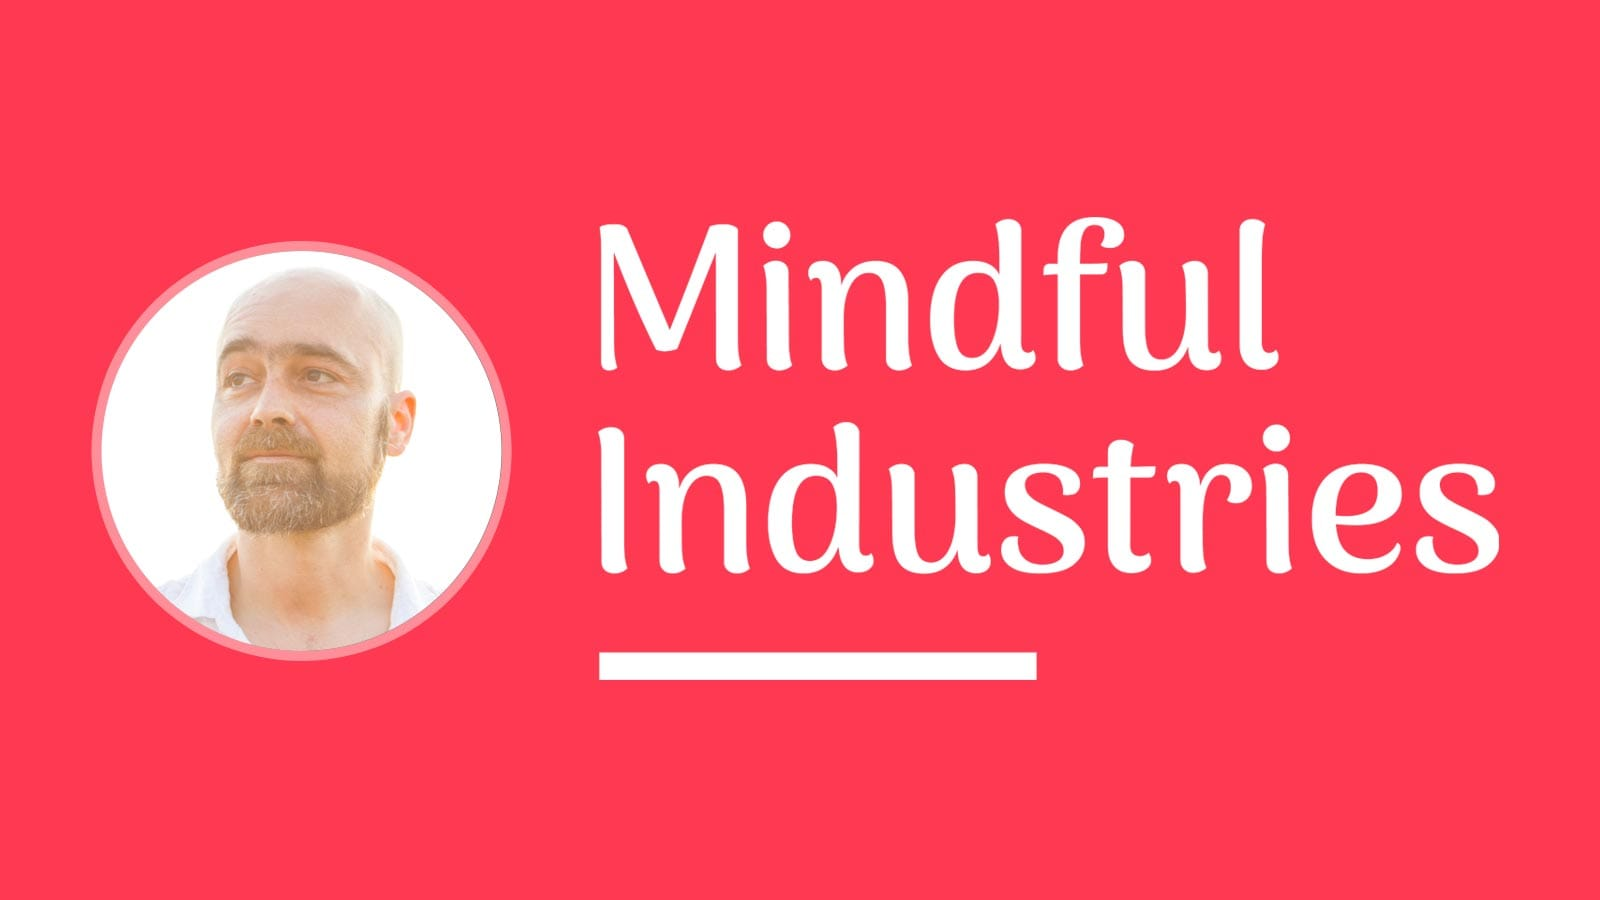 How Mindful Industries Use Html Email Templates To Send